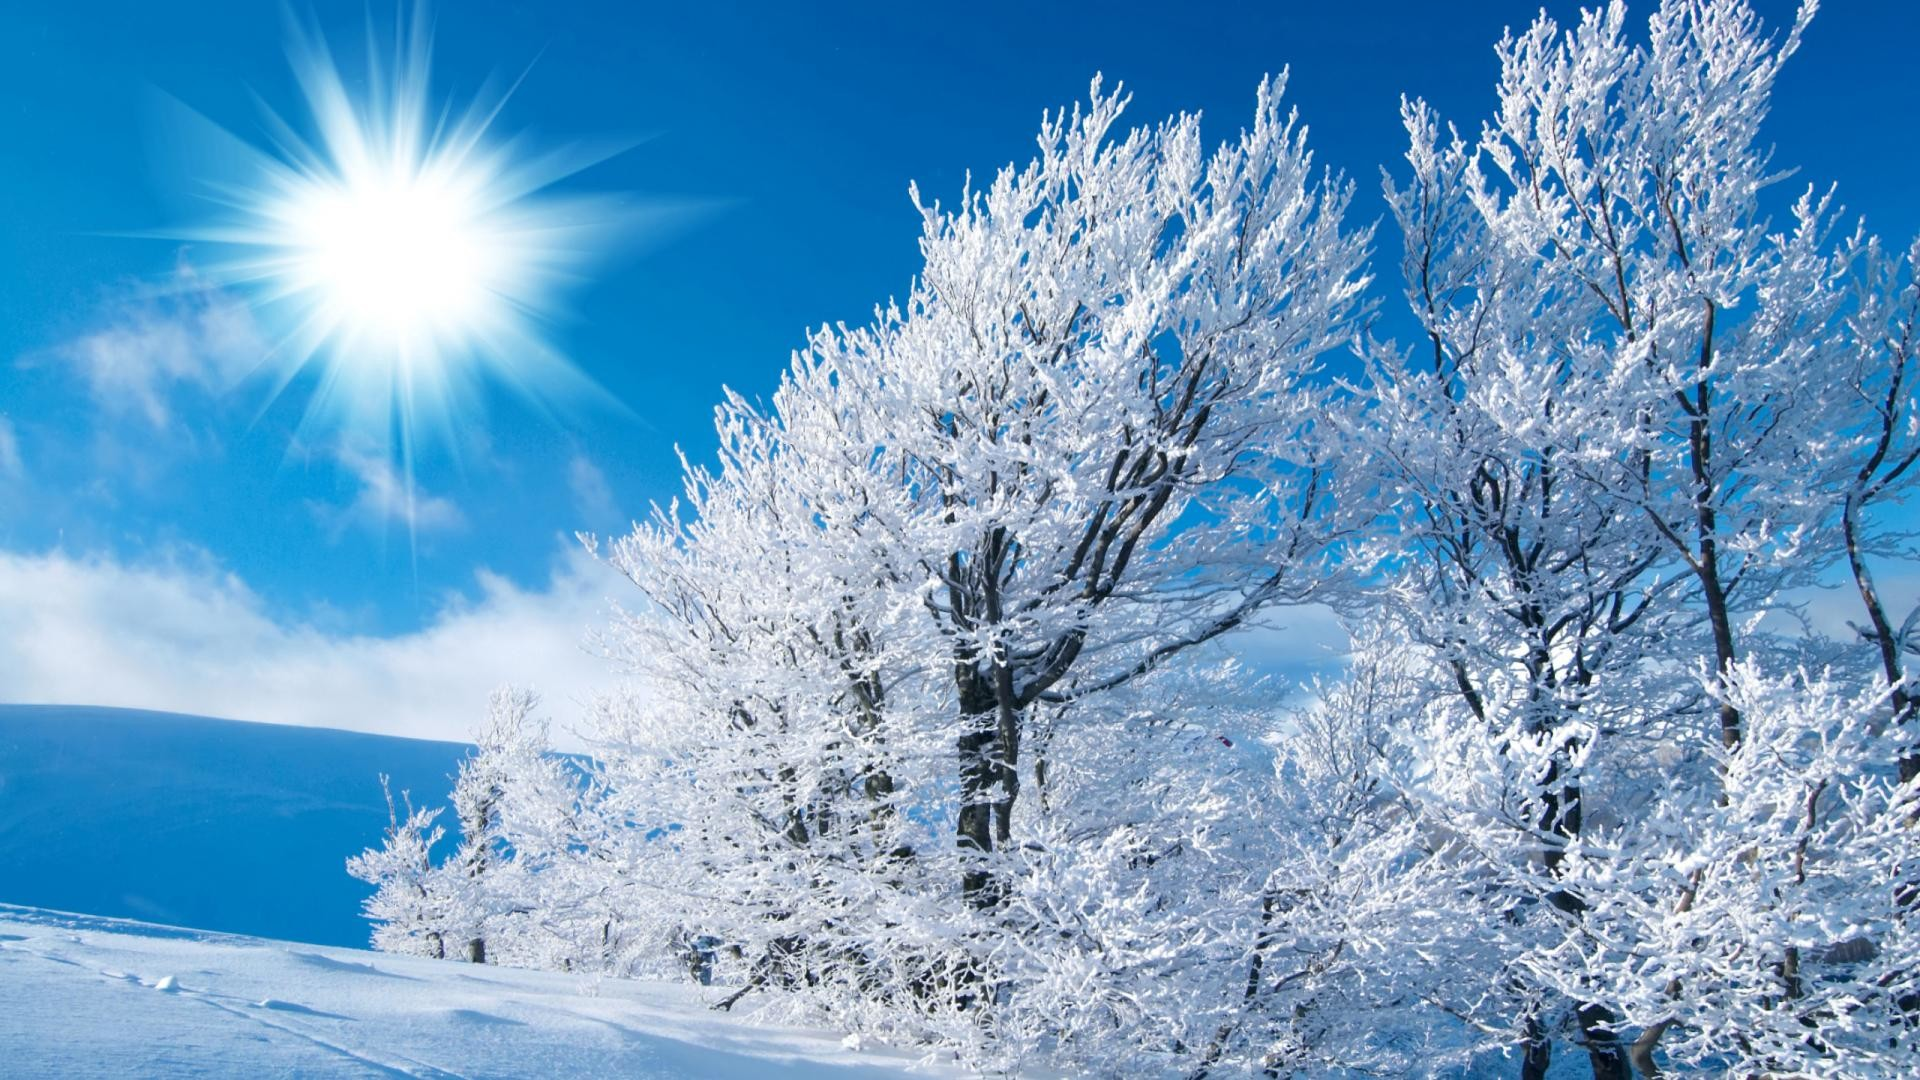 winter pictures for desktop background (69+ images)